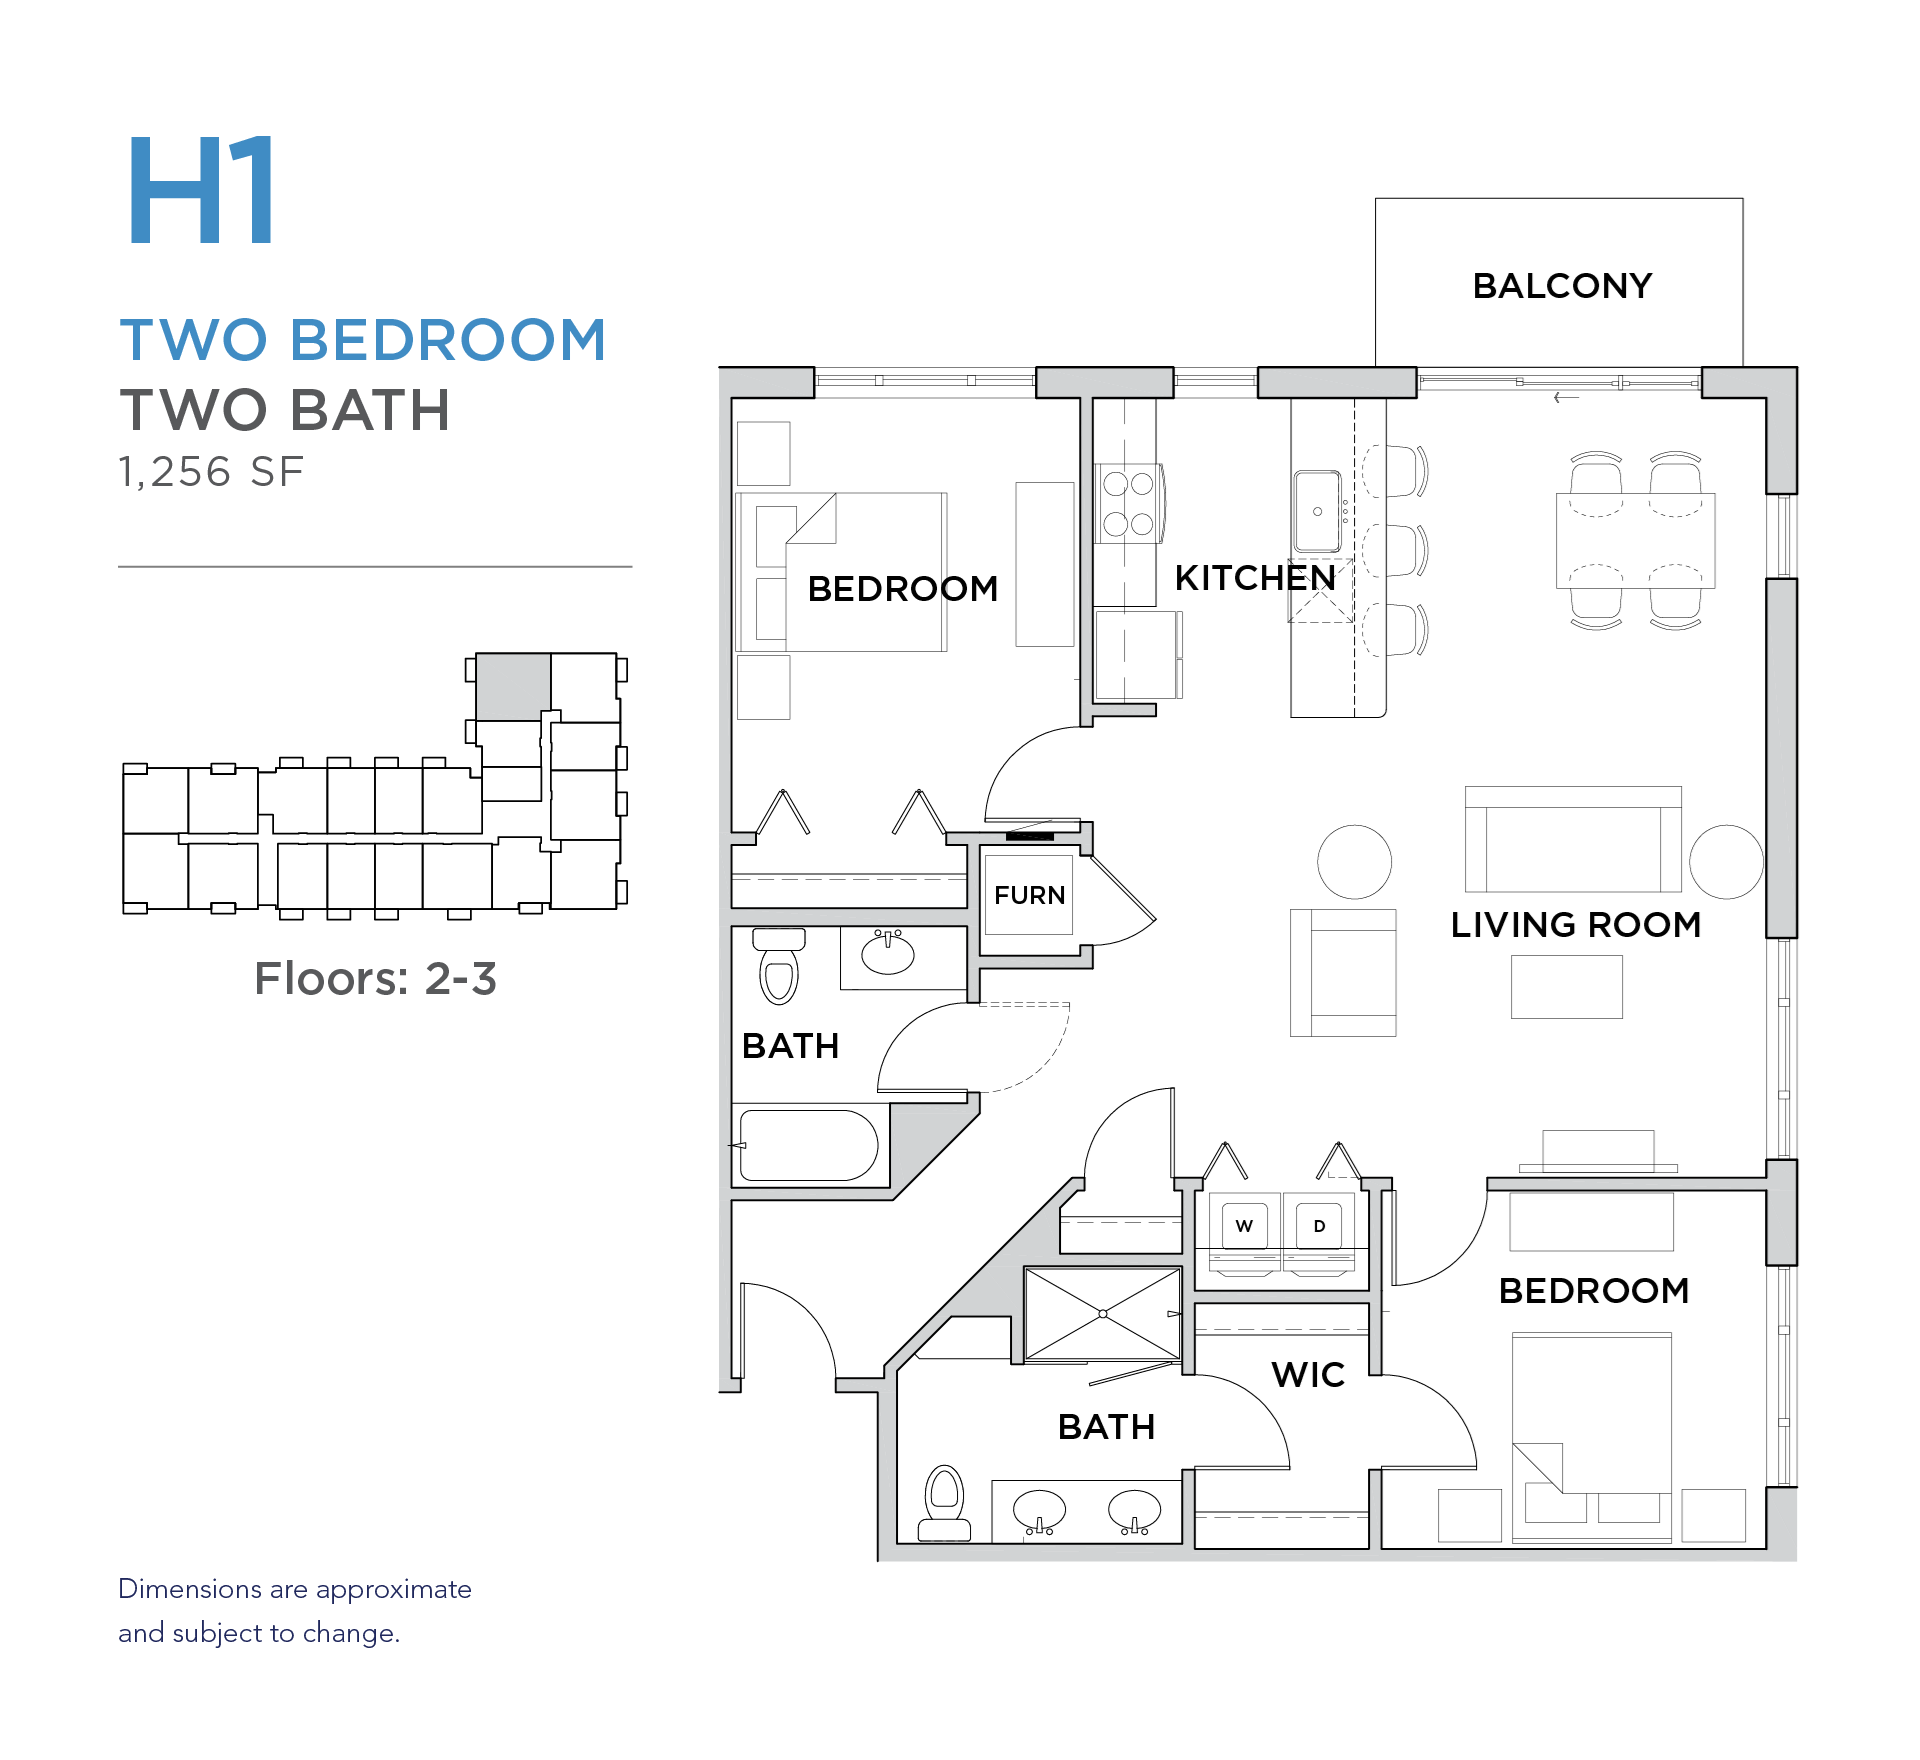 101 West 2 bed 2 bath 1,256 square foot apartment floor plan